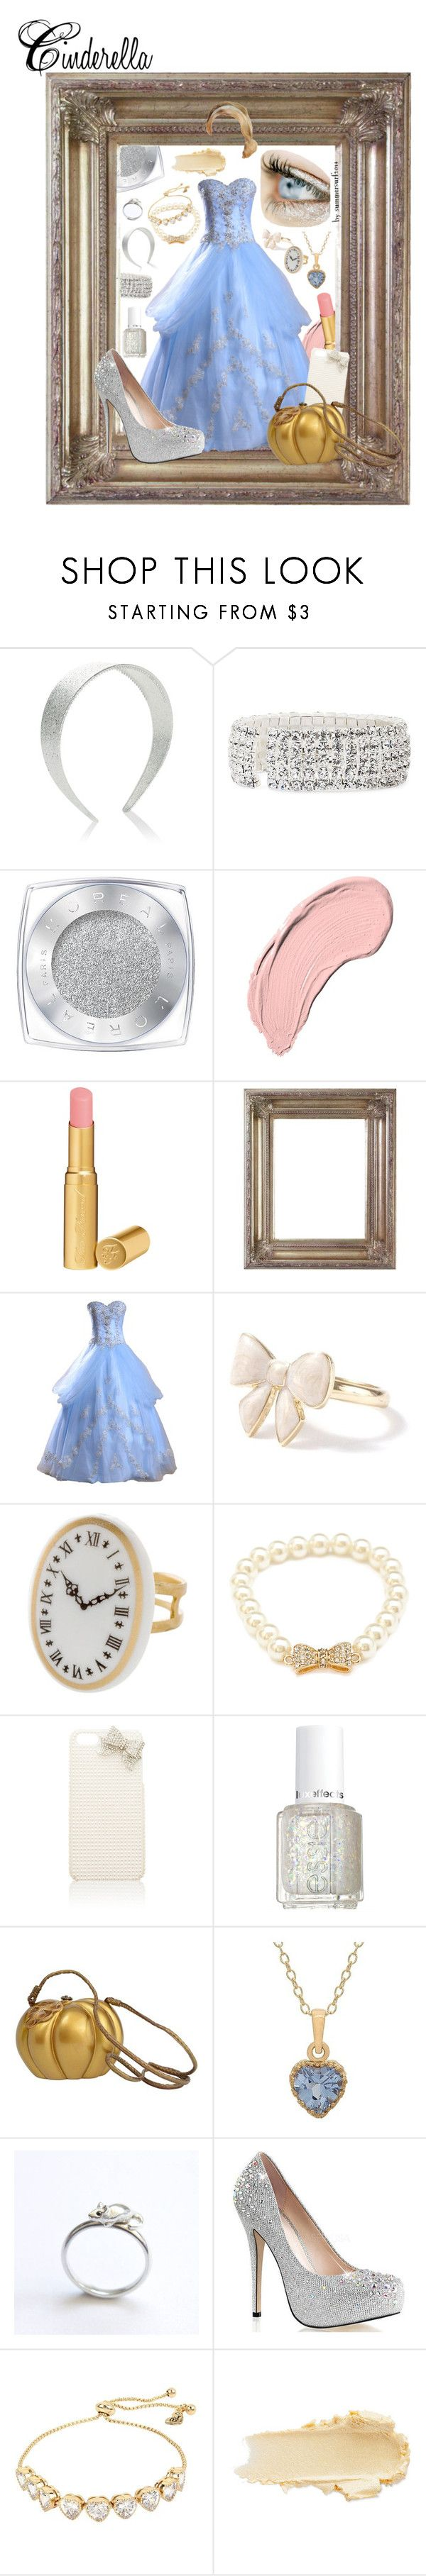 """Cinderella Prom"" by summersurf2014 ❤ liked on Polyvore featuring Accessorize, Vieste Rosa, L'Oréal Paris, NYX, Too Faced Cosmetics, Forever 21, Forever New, Essie, Timmy Woods and TIARA"